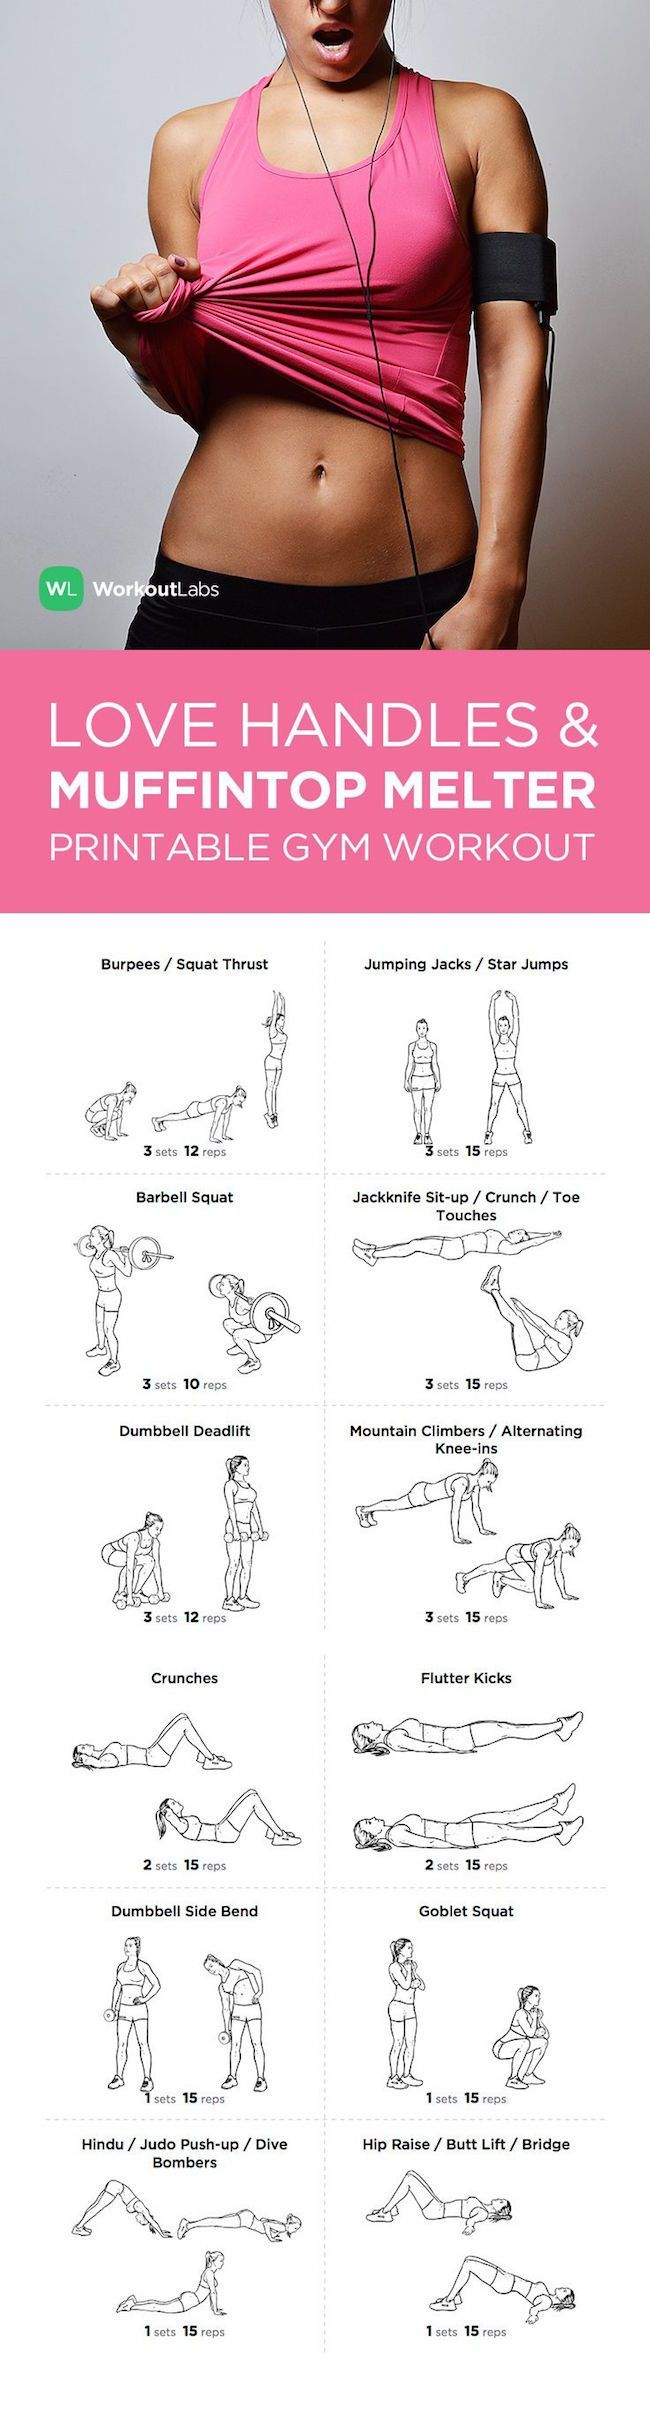 The 11 Best Muffin Top Exercises